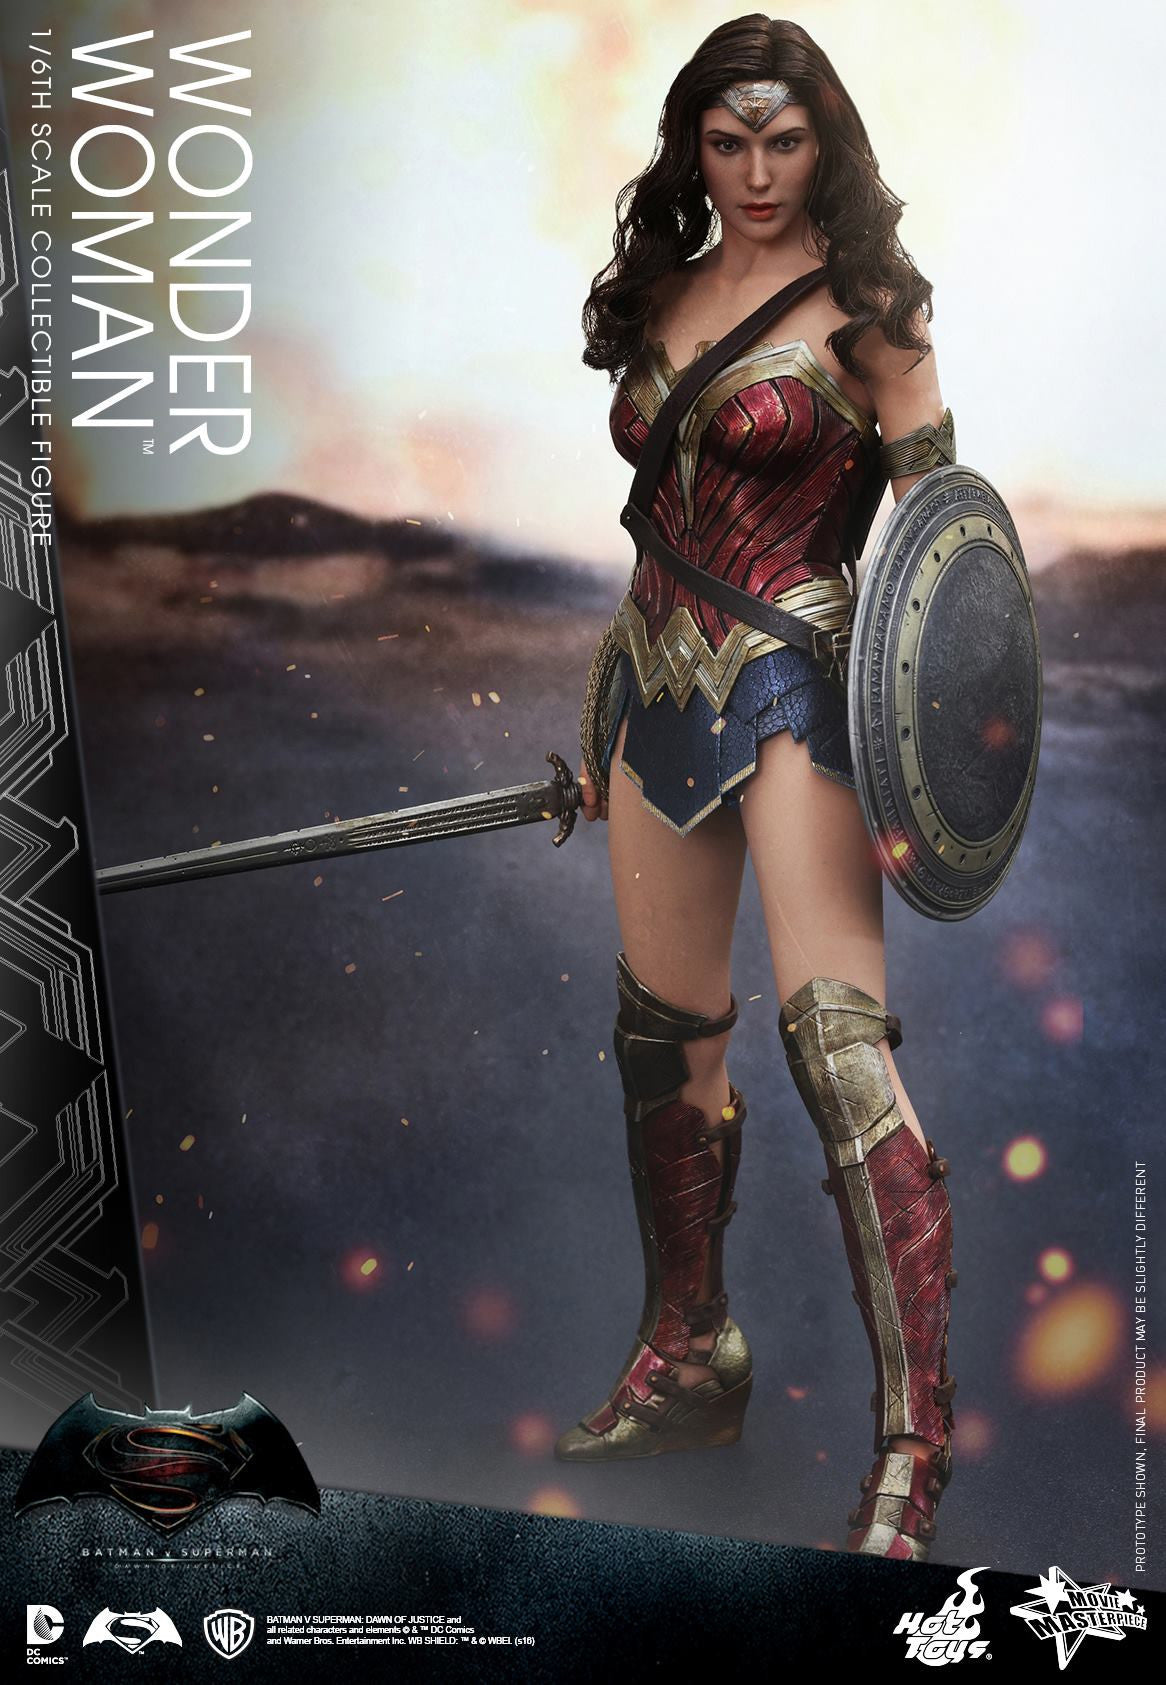 Hot Toys - Batman v Superman: Dawn of Justice - Wonder Woman MMS359 - Marvelous Toys - 4